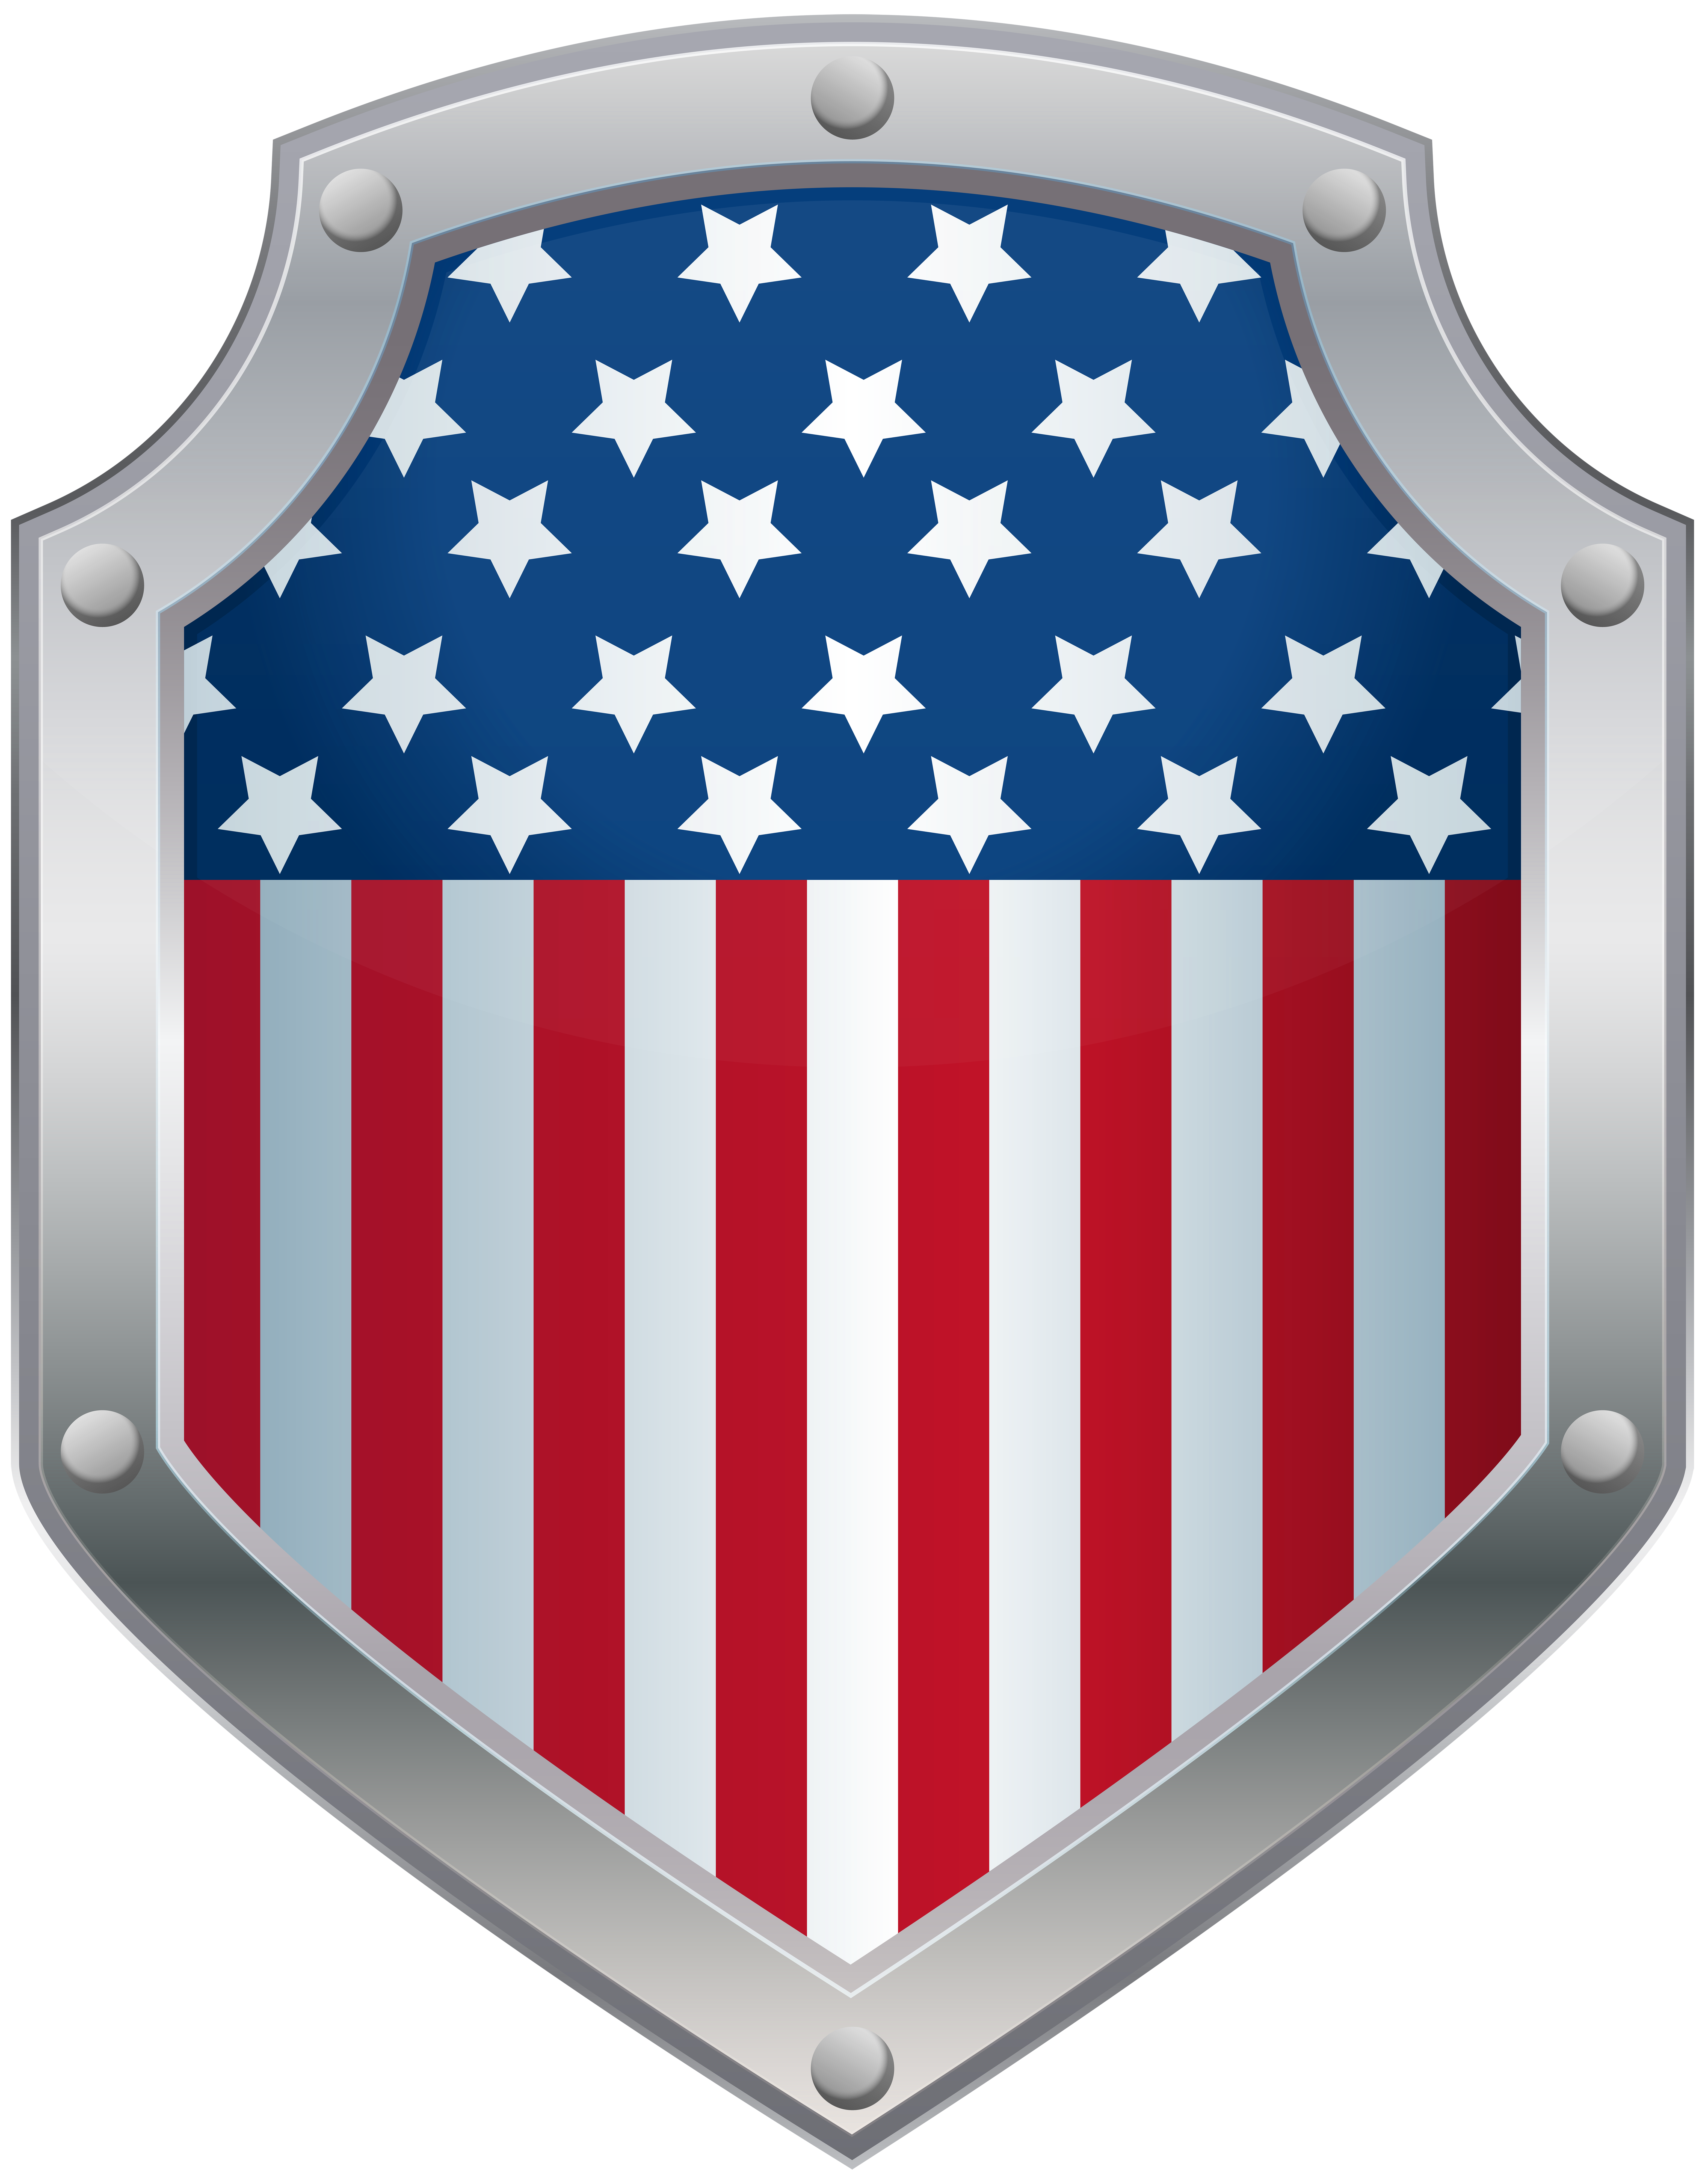 Shield clipart flag. American badge png clip